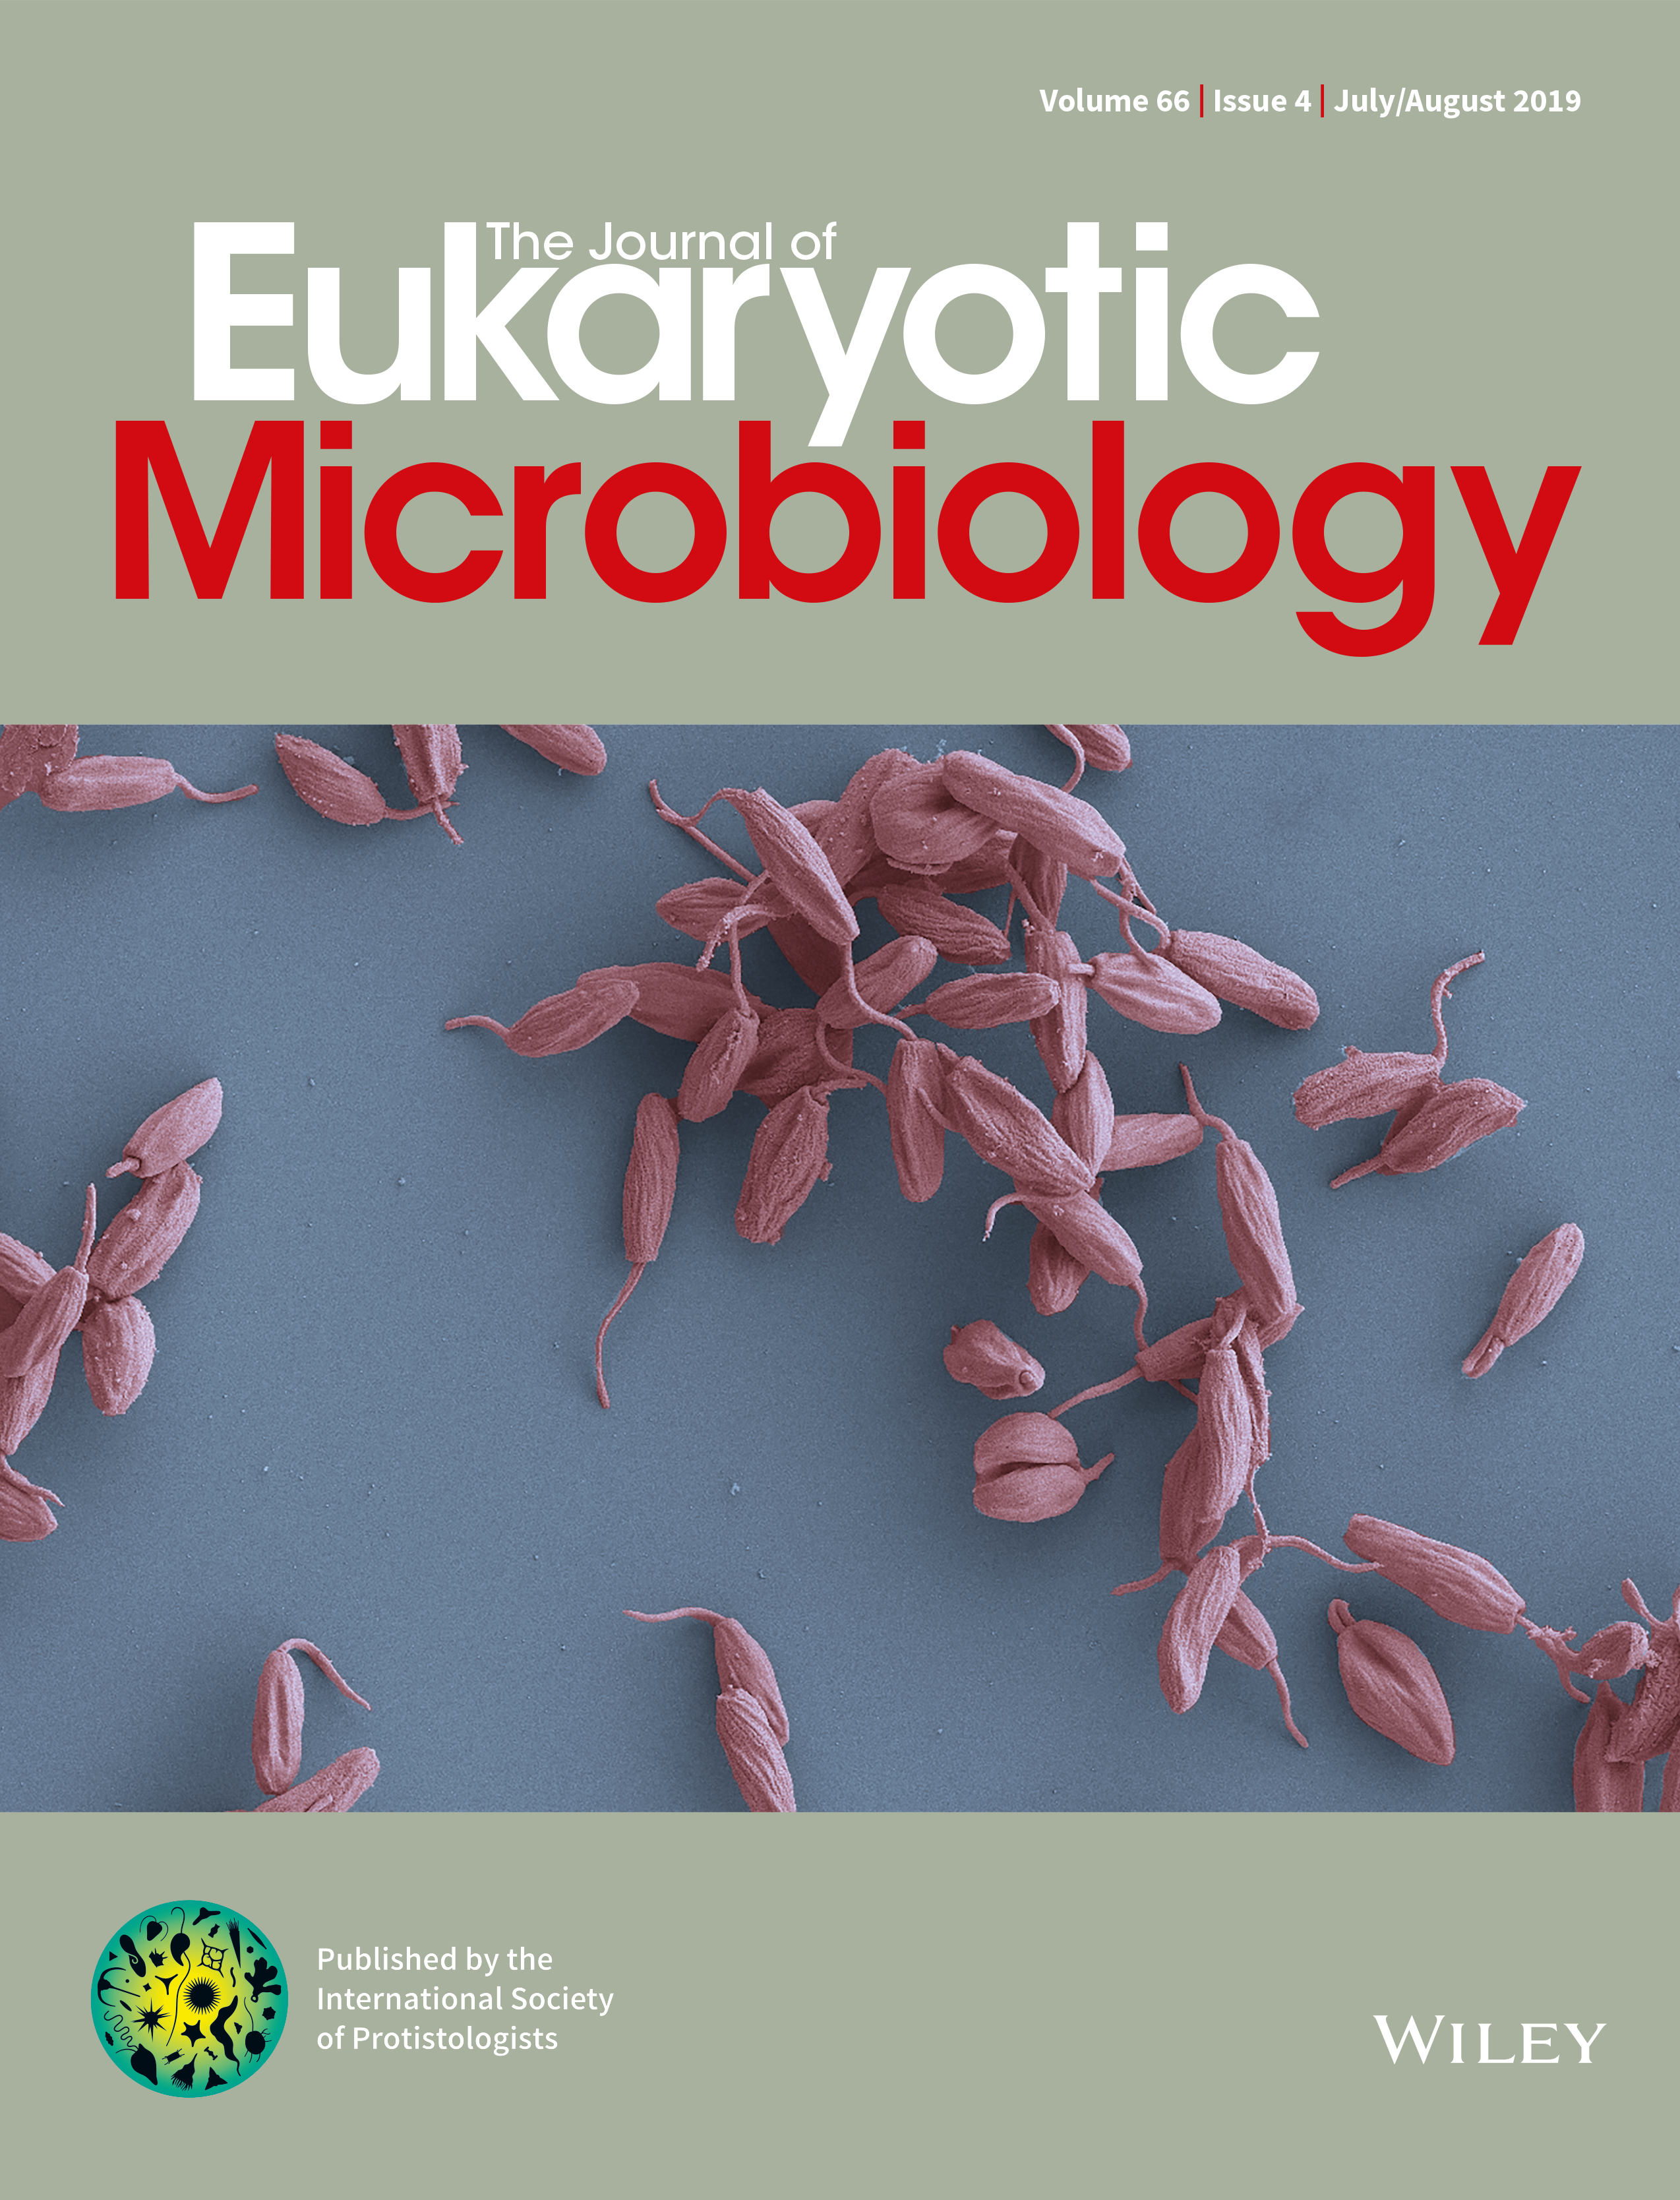 The Journal of Eukaryotic Microbiology